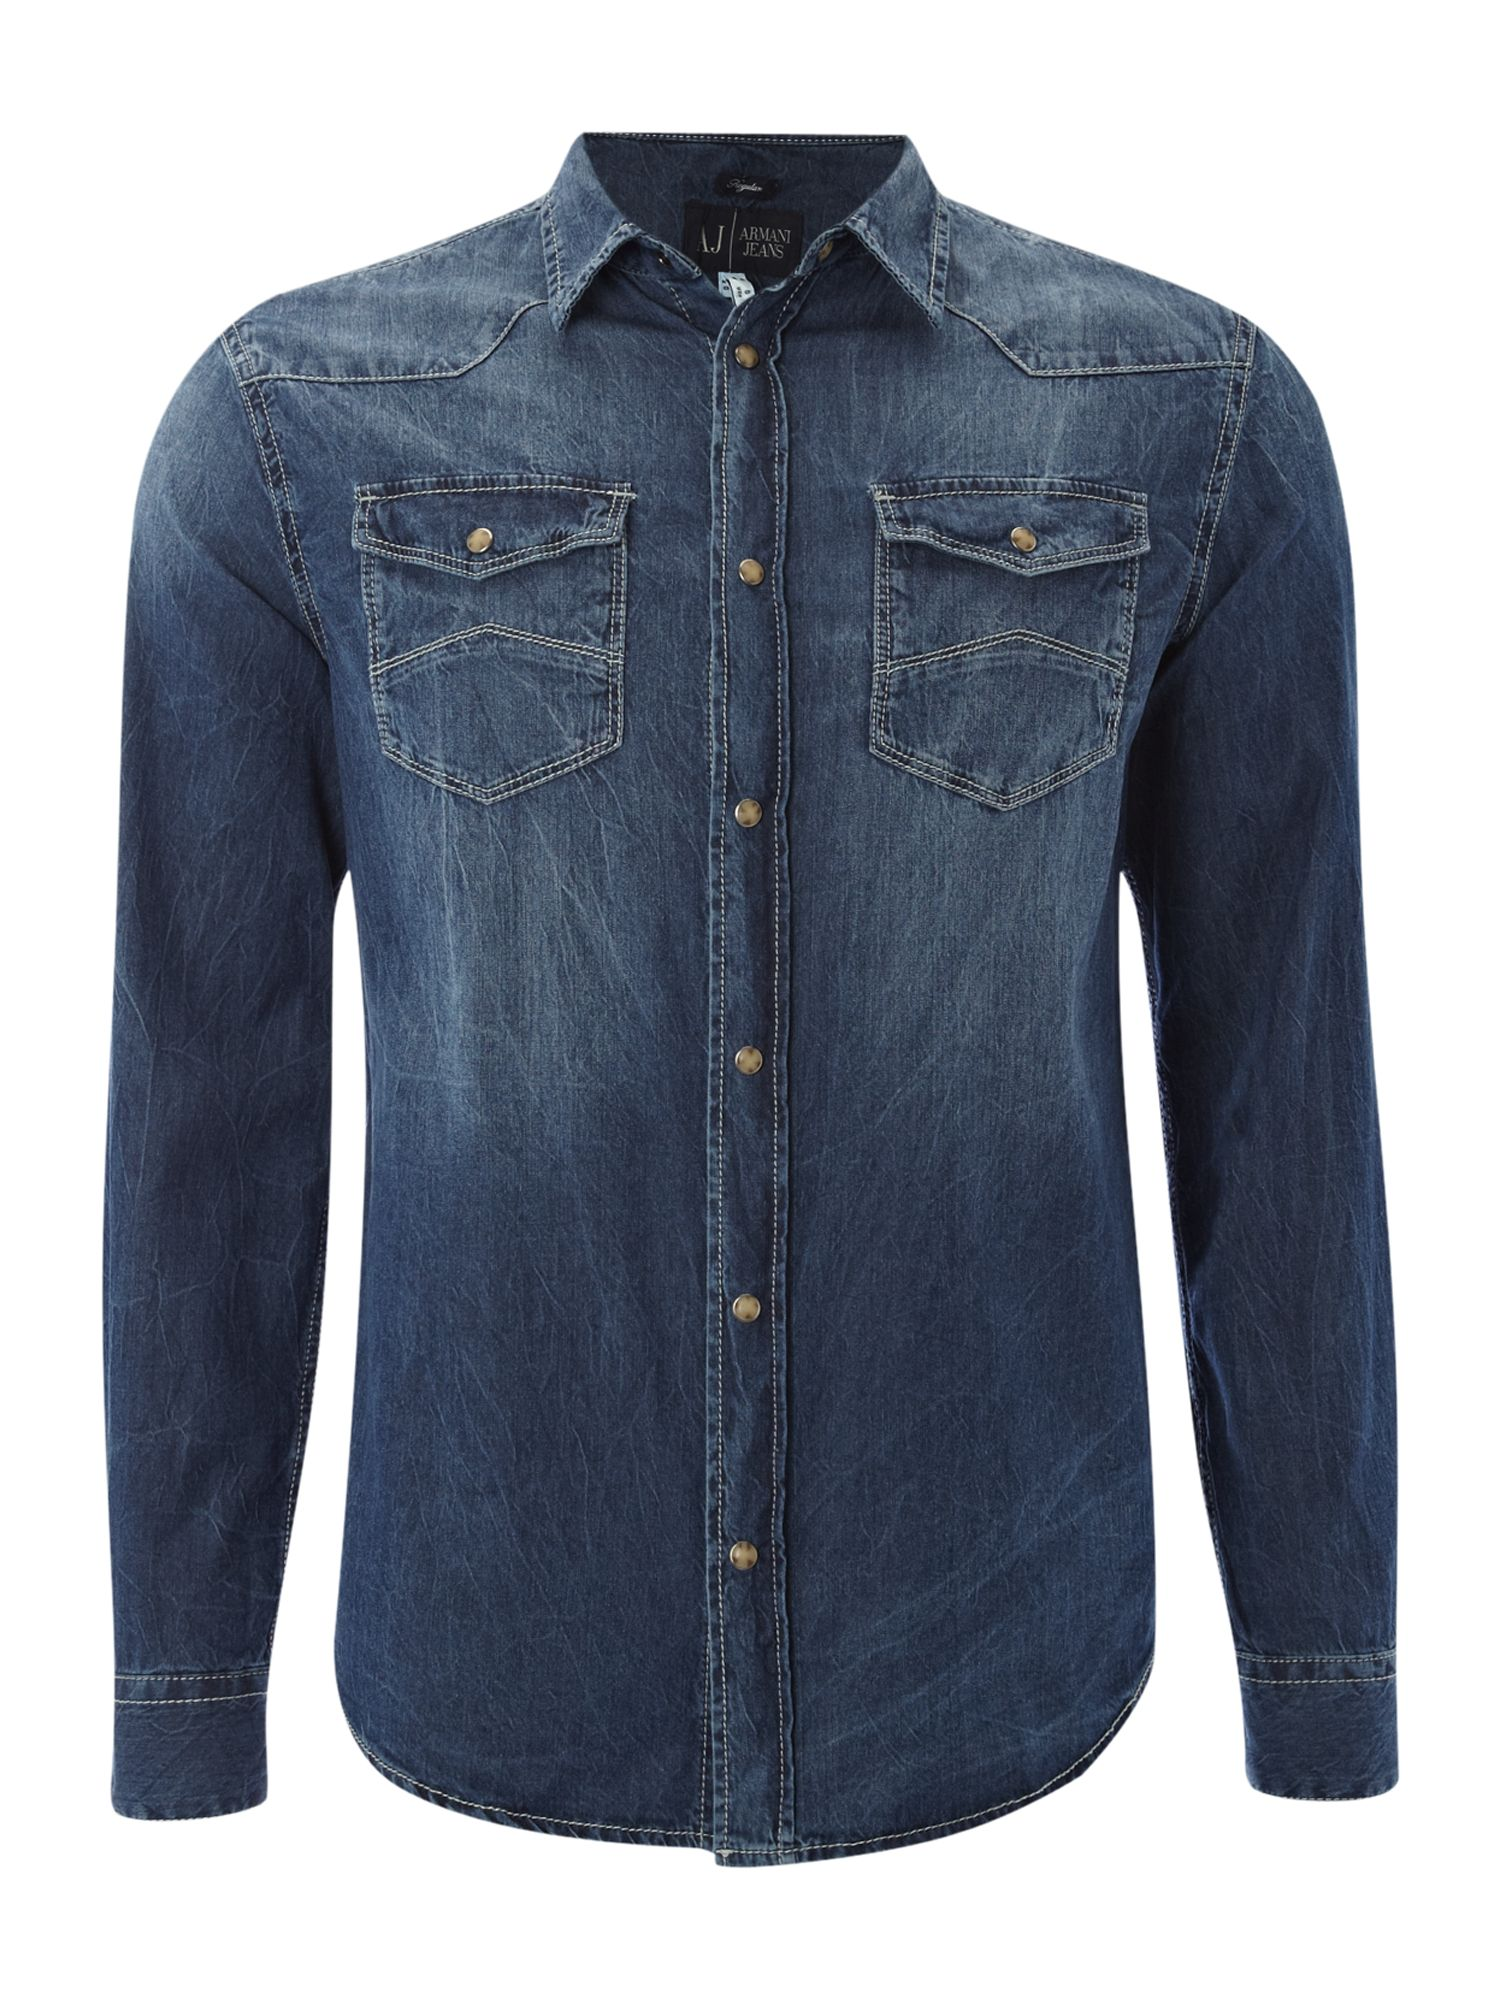 Armani Jeans Denim Long Sleeved Two Pocket Shirt In Blue